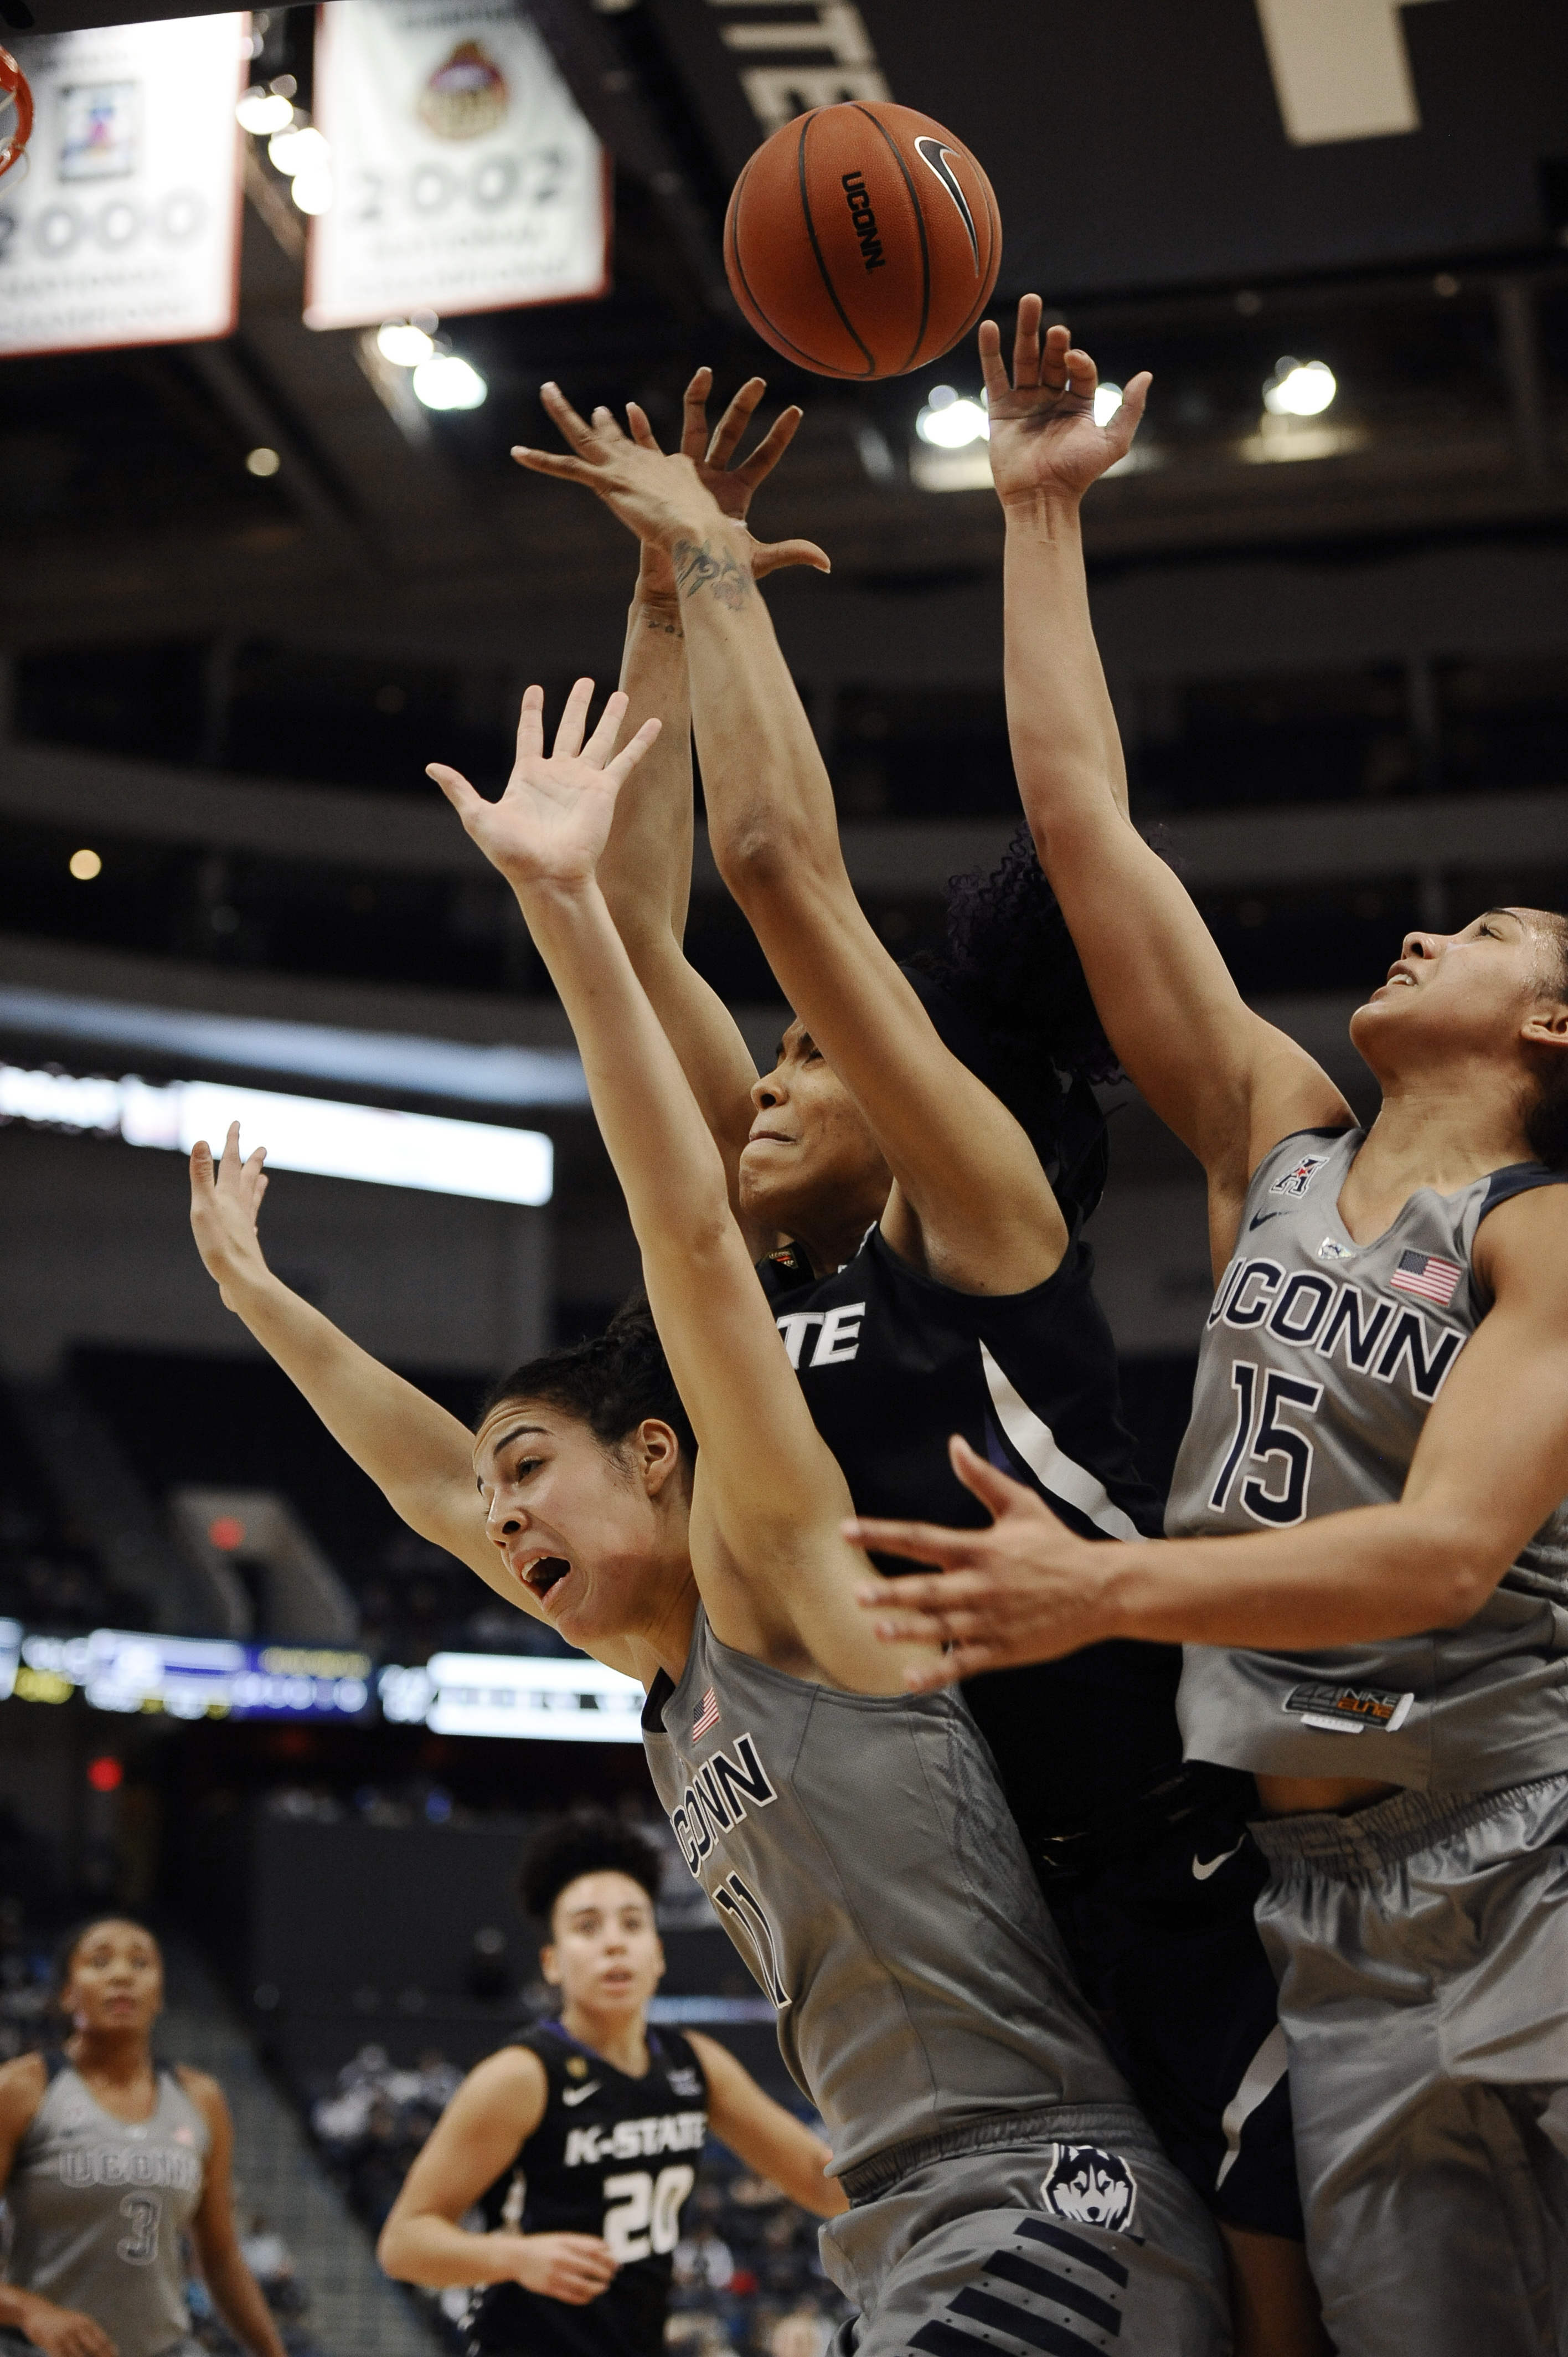 Connecticut's Kia Nurse, left, and Gabby Williams, right, sandwich Kansas State's Erica Young, center, as the vie for a rebound during the first half of an NCAA college basketball game, Monday, Nov. 23, 2015, in Hartford, Conn. (AP Photo/Jessica Hill)